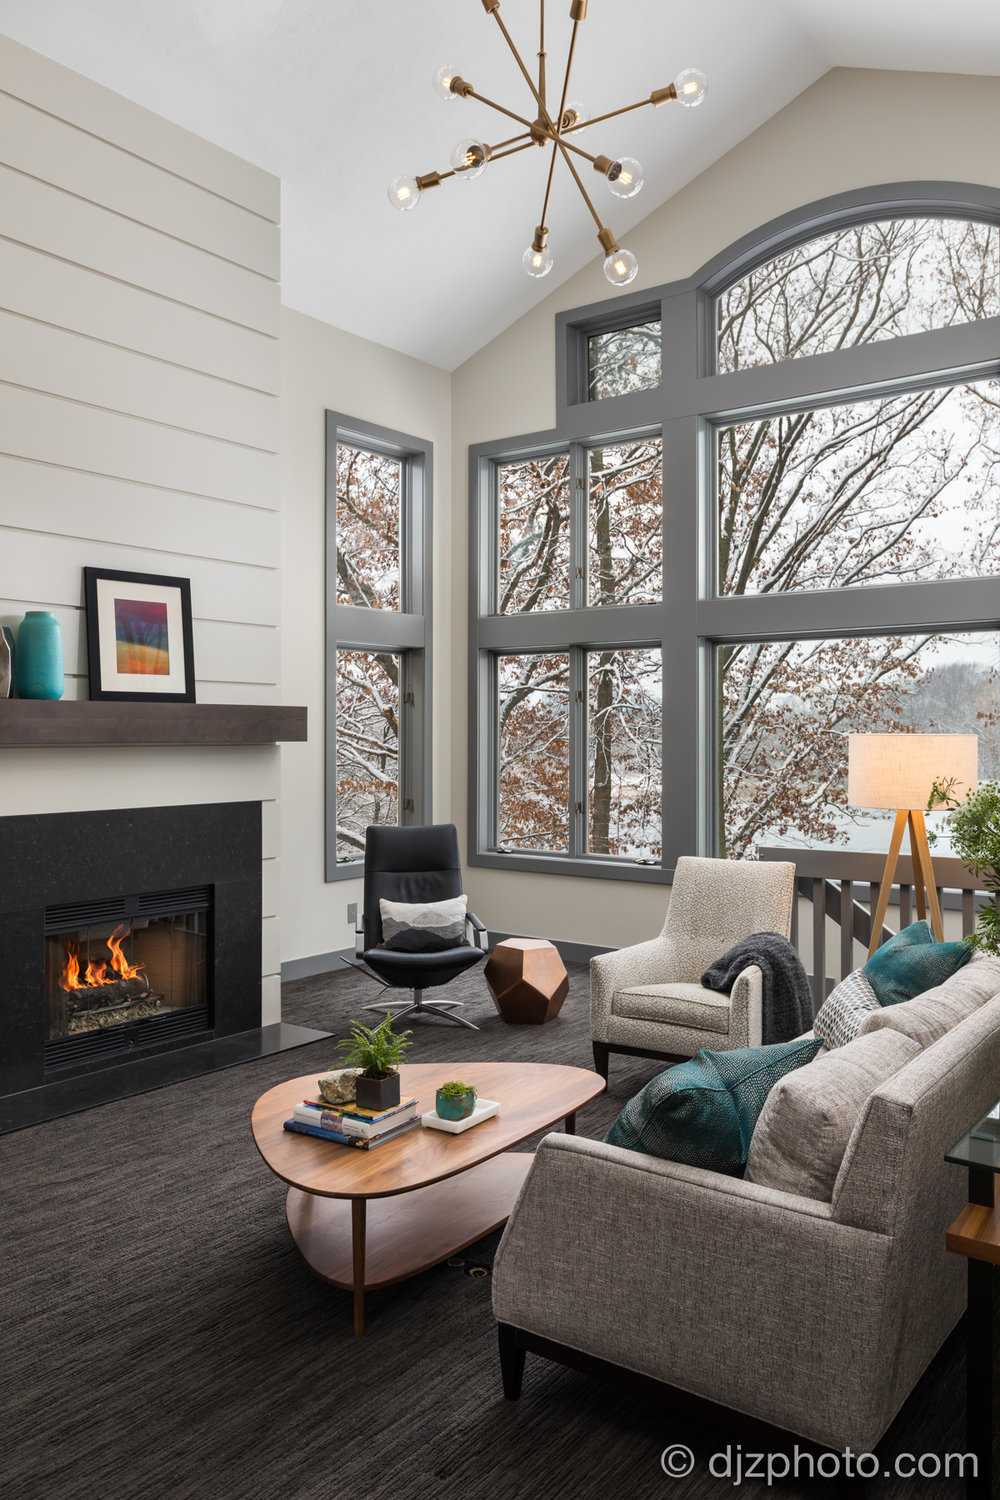 Winter Living Room with a Fireplace